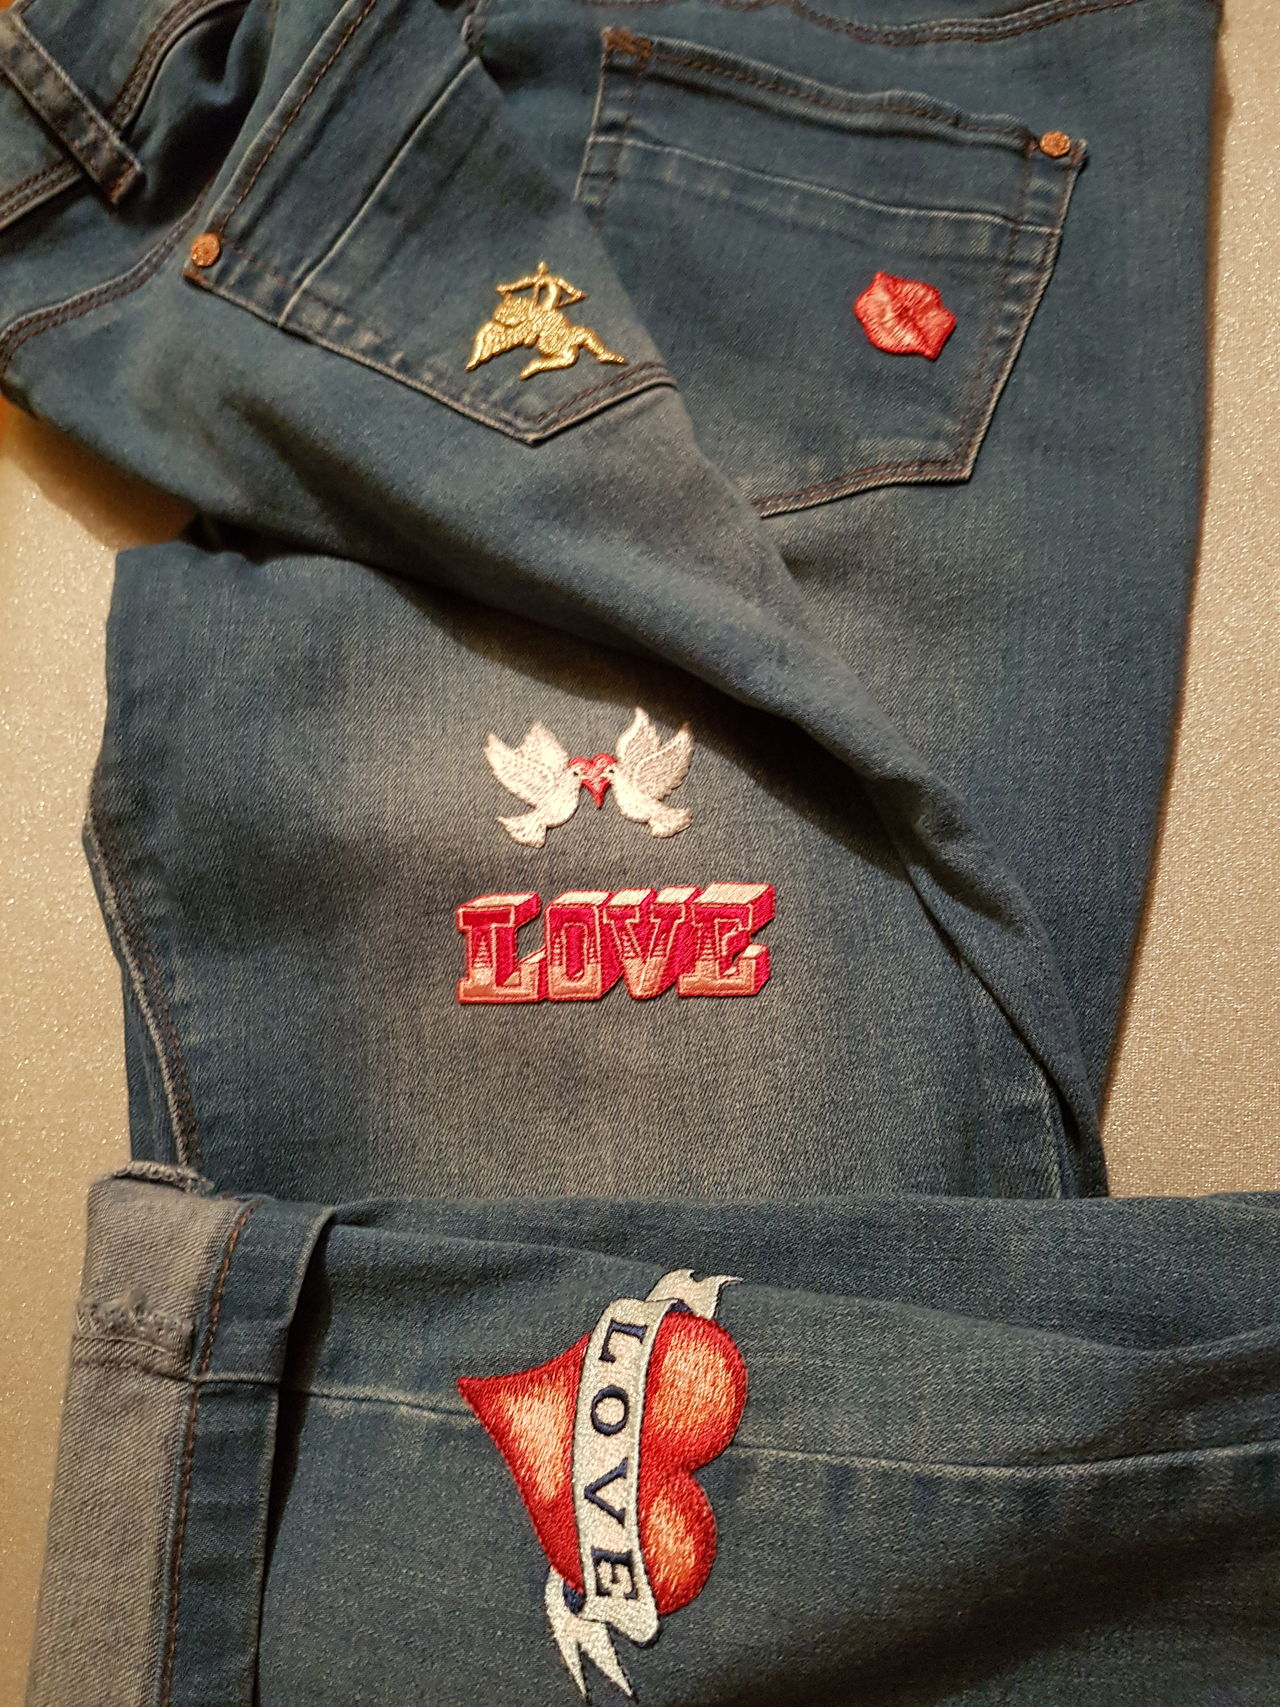 Love Rockabilly Tattoostyle Irononpatches Clothing Jeans Denim TurnUps Casual Clothing Cupid Hearts Wings Angels Fashion Close-up Lips Text One Person Indoors  Day Doves Haberdashery Sewing Pockets